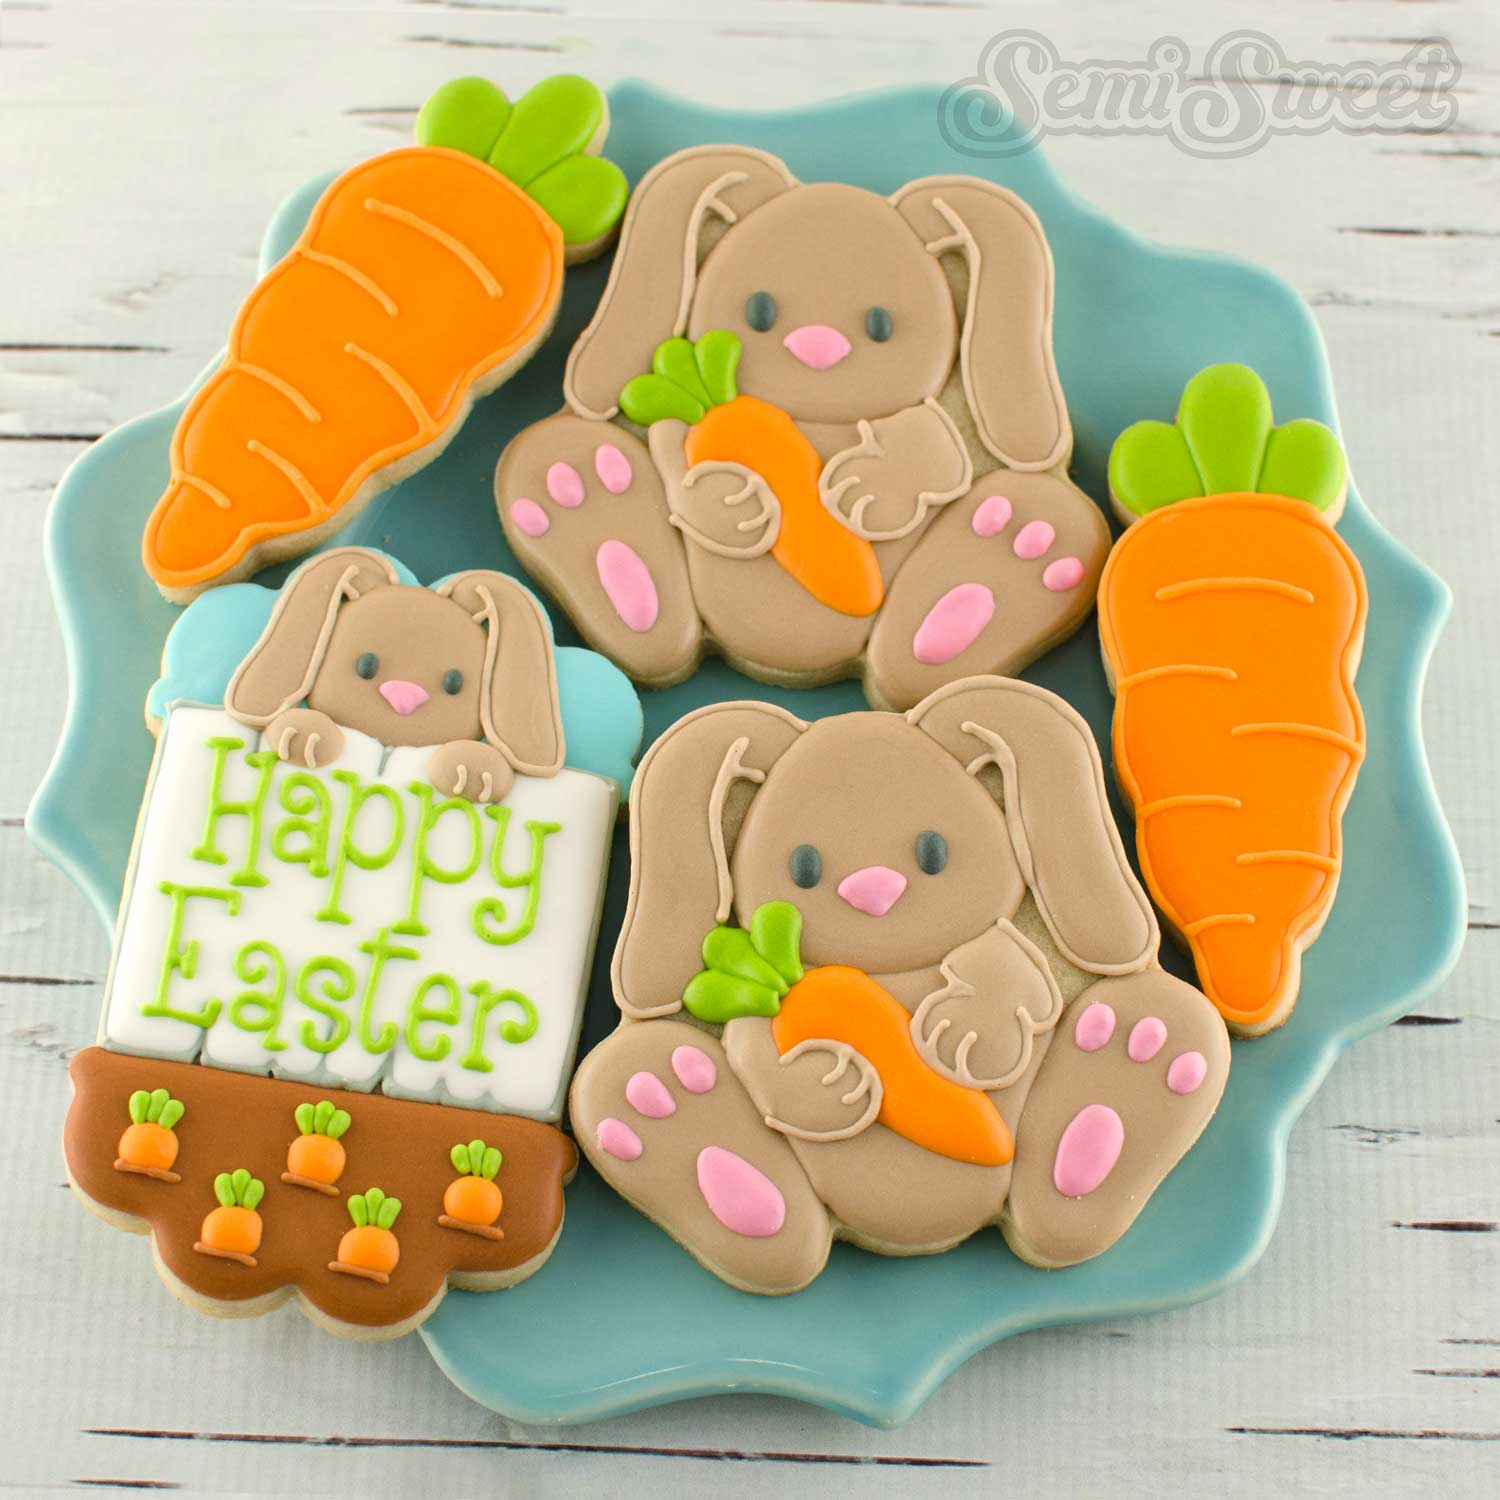 How to Make Easter Bunny Cookies by SemiSweetDesigns.com